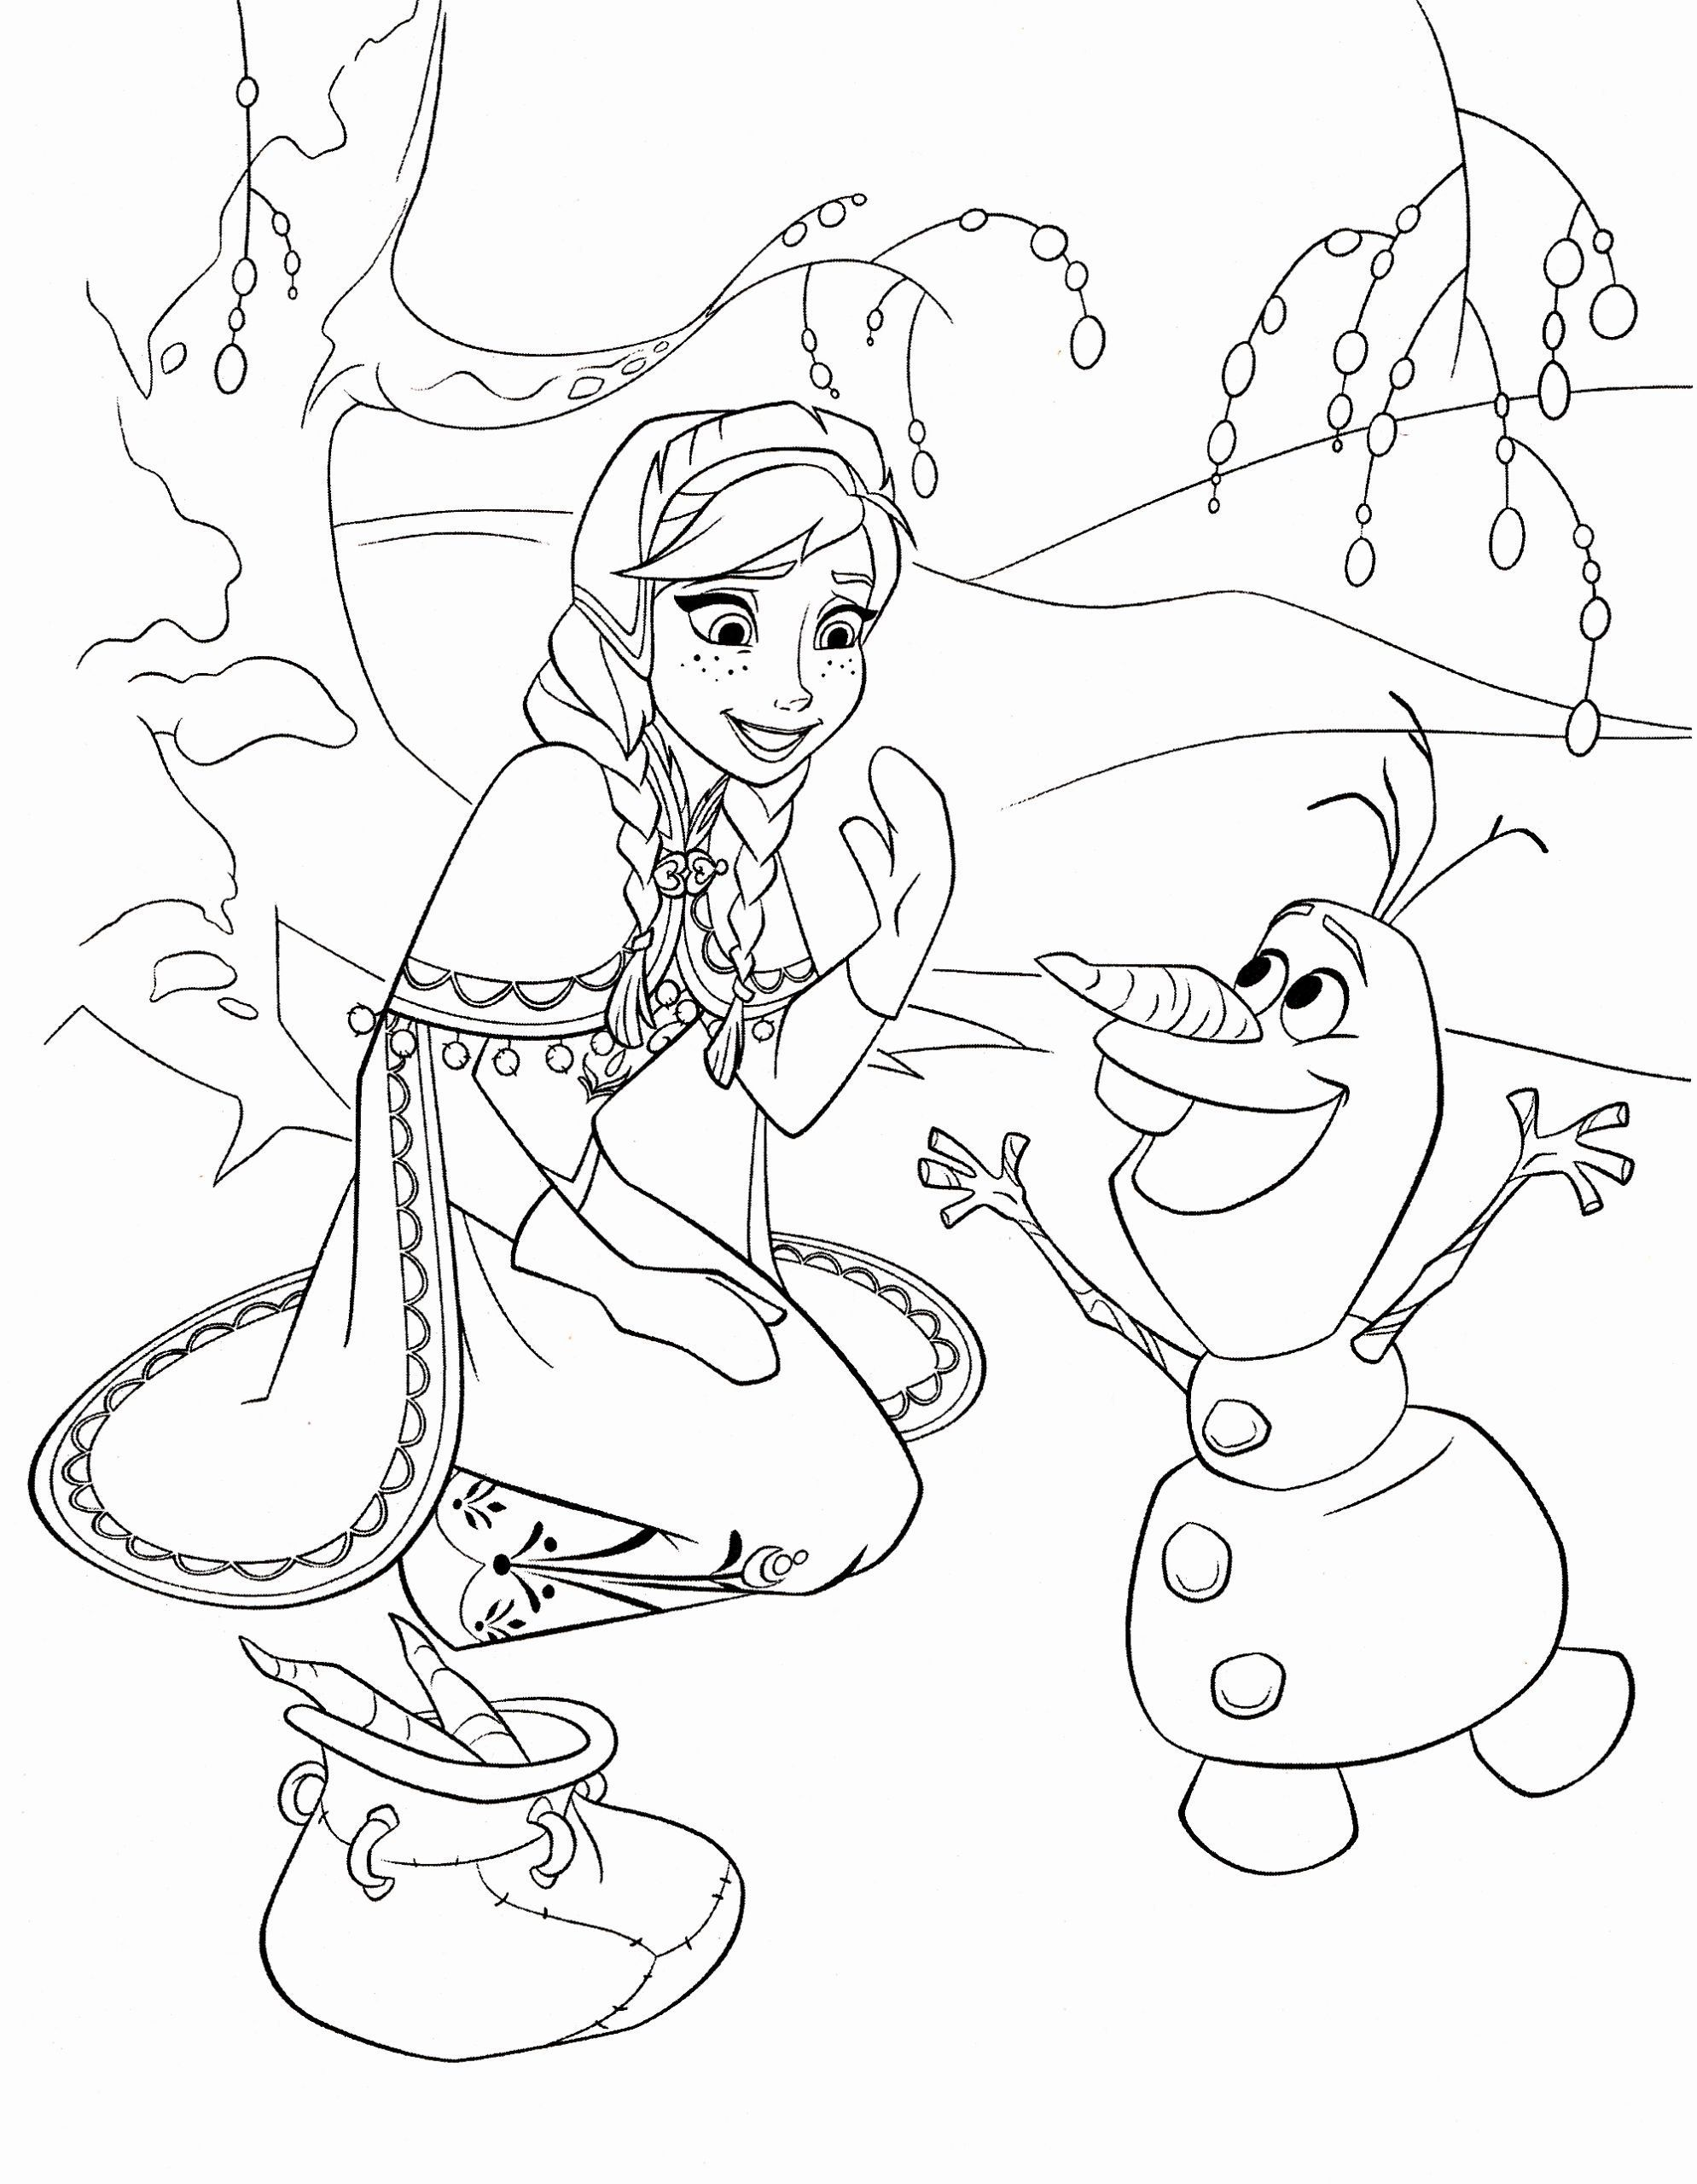 Disney Characters Printable Coloring Pages In 2020 Frozen Coloring Pages Disney Coloring Pages Frozen Coloring